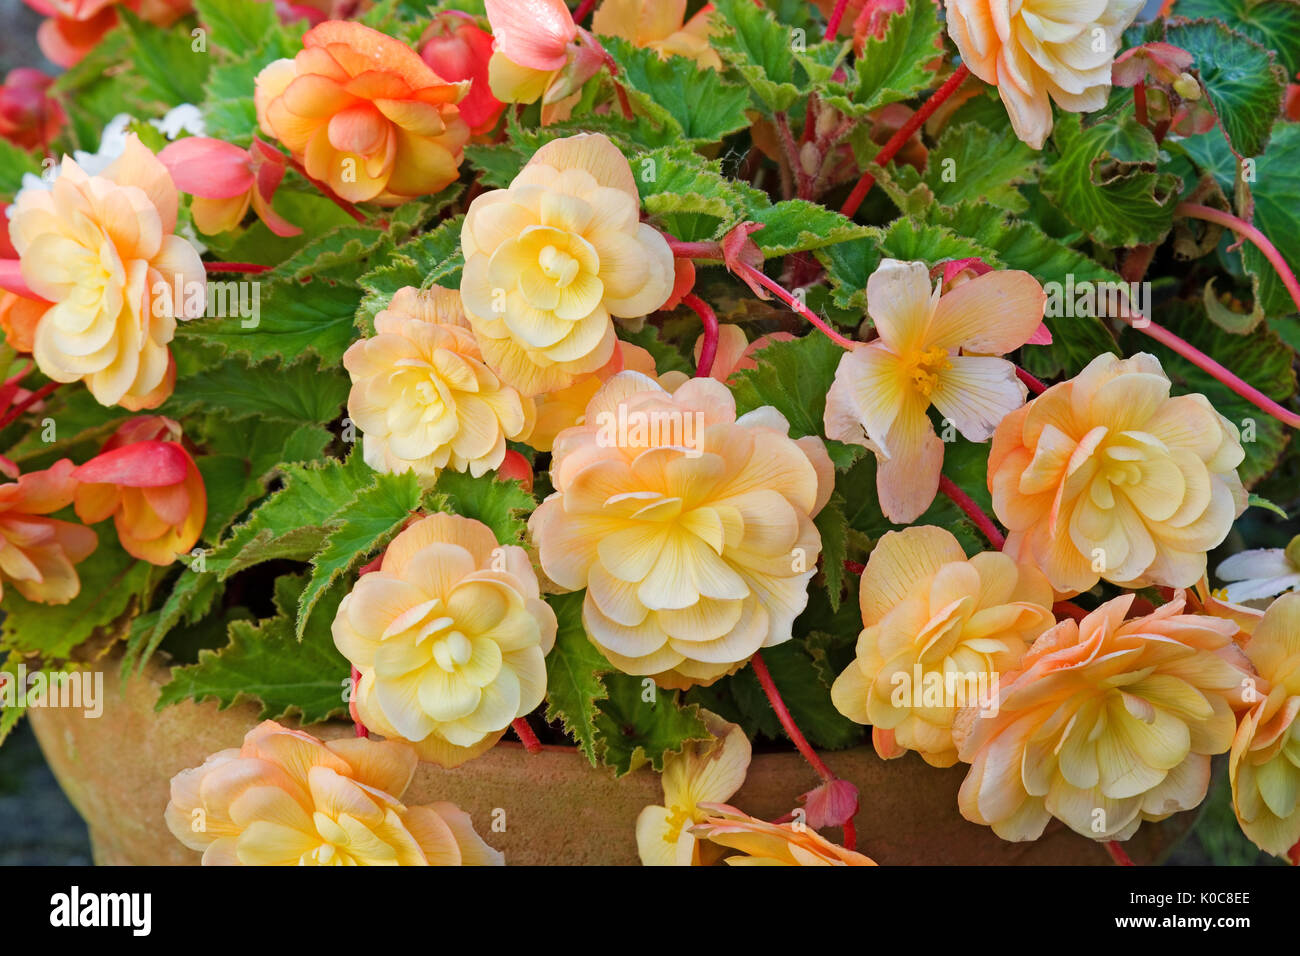 Apricot colored flowers stock photos apricot colored flowers stock close up of beautiful peach coloured trailing begonia flowers in a terracotta pot mightylinksfo